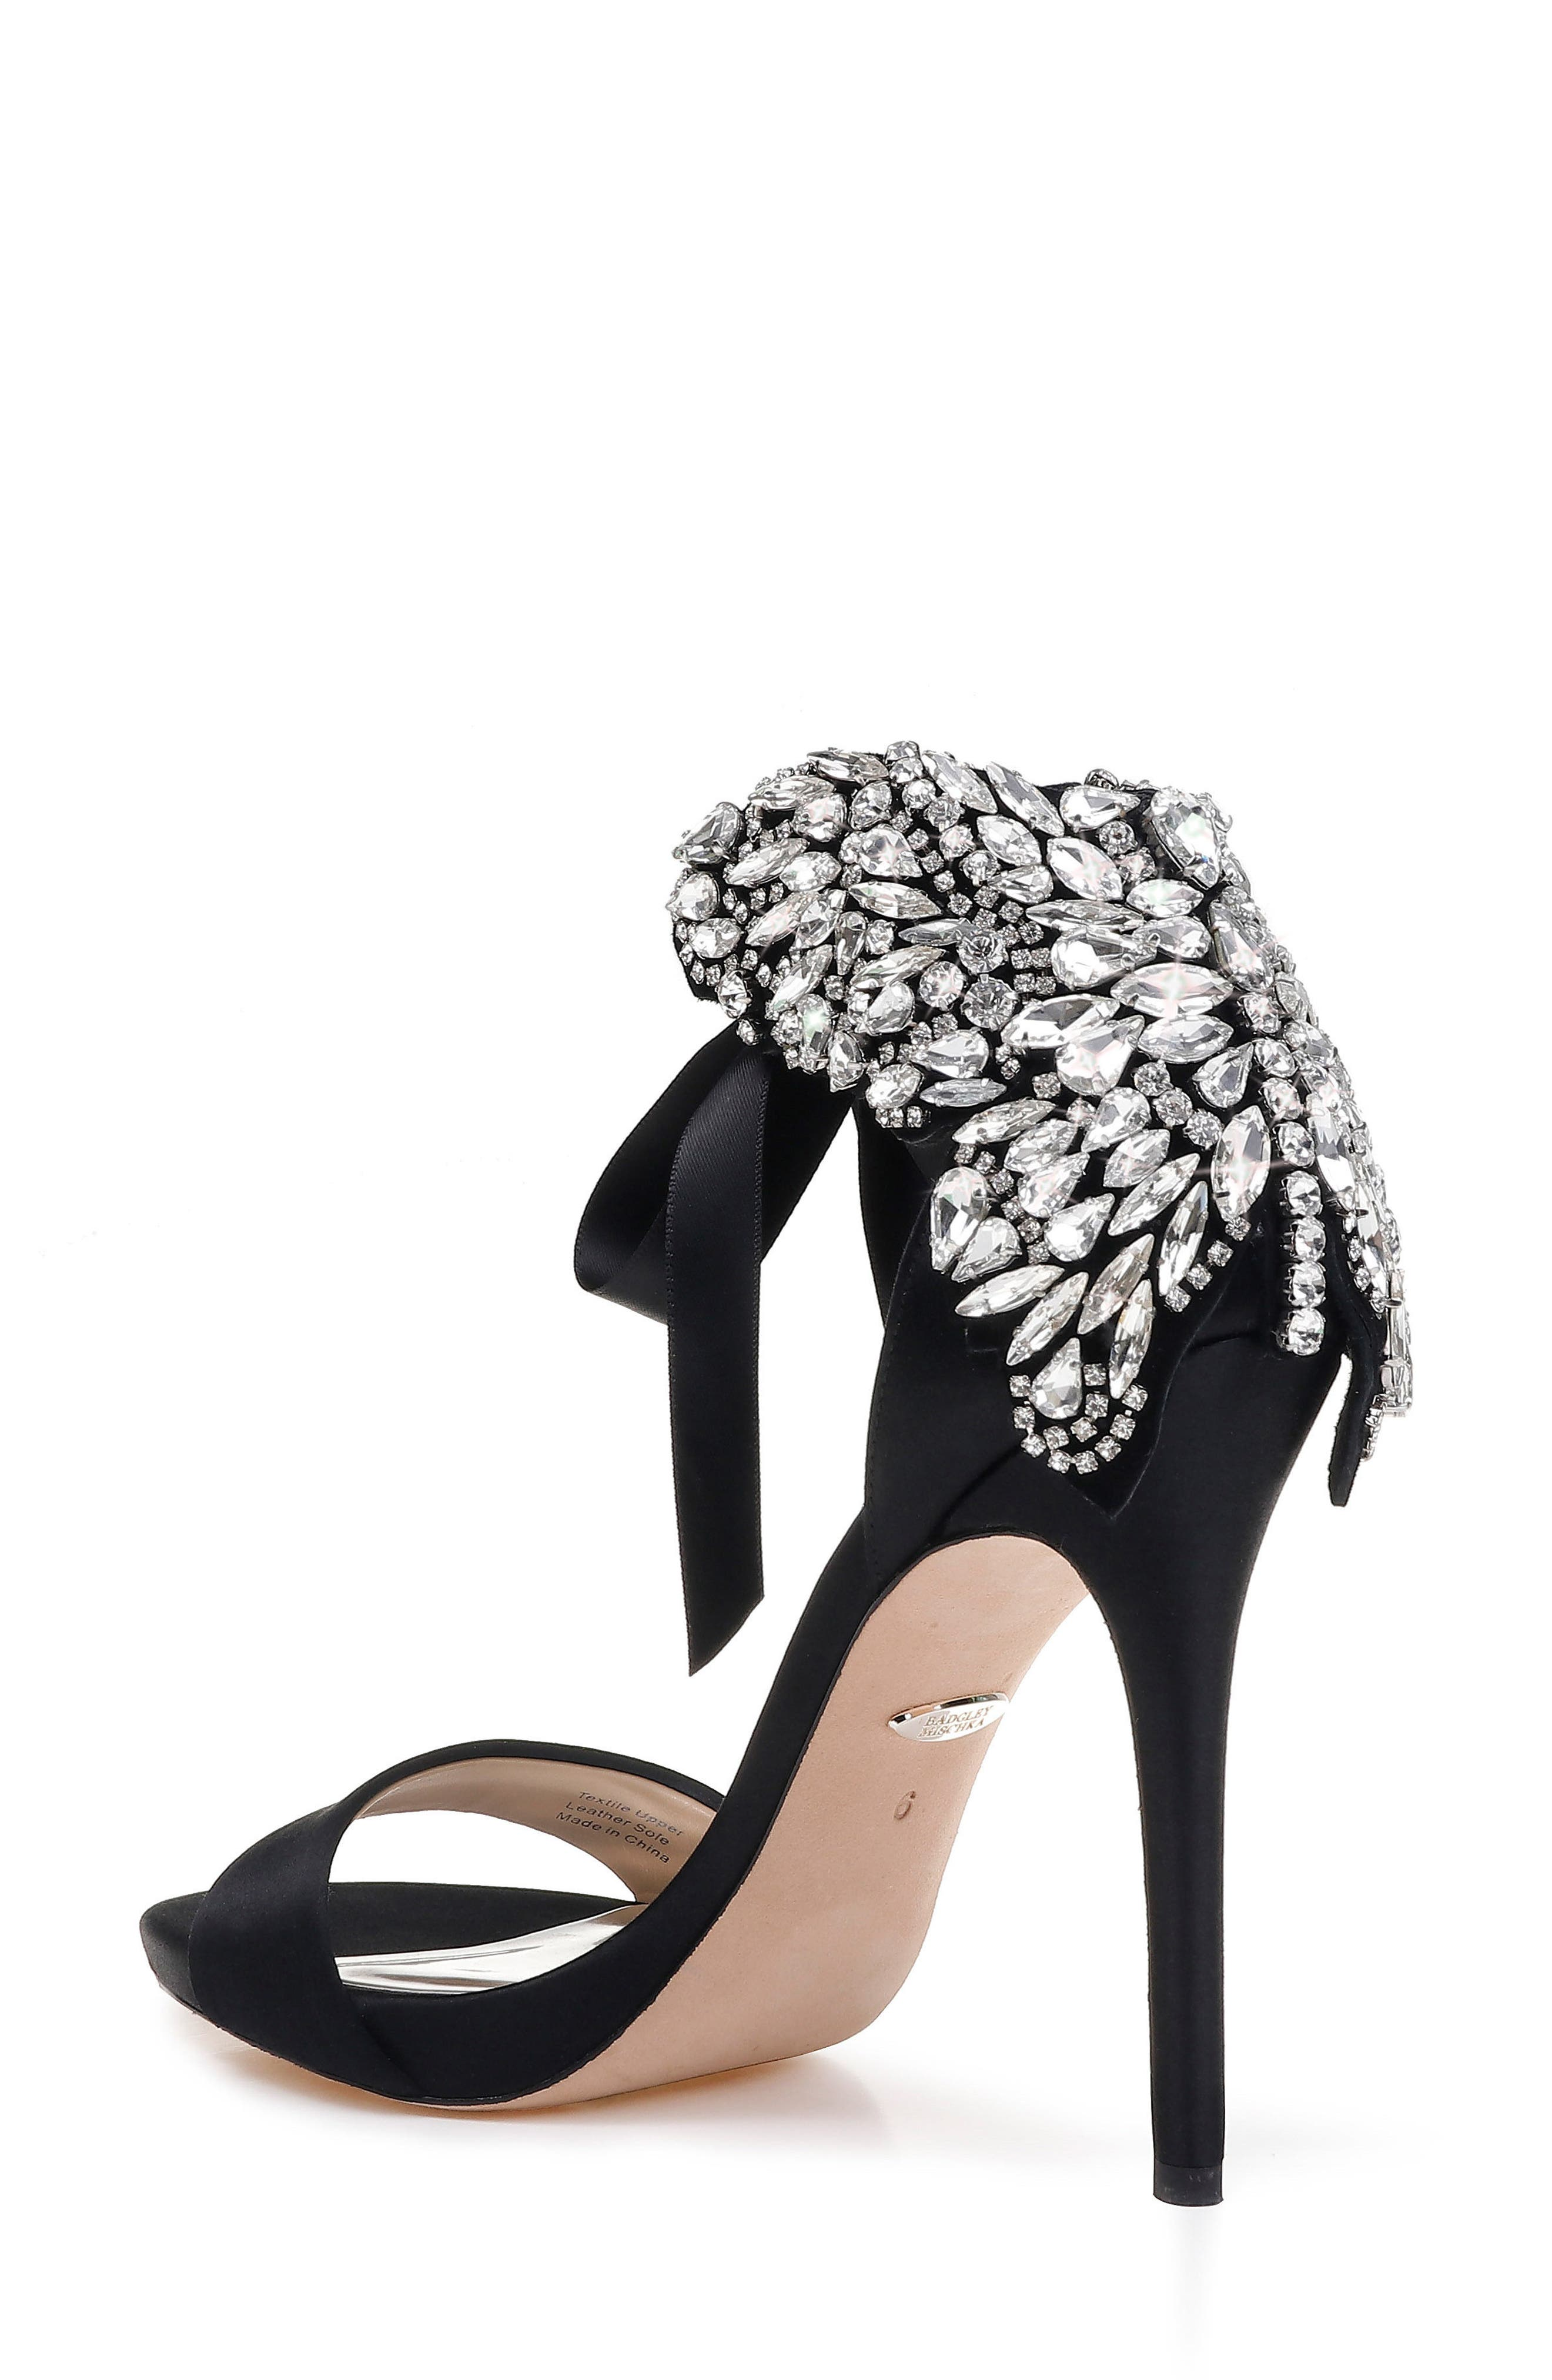 Hilda Crystal Embellished Sandal,                             Alternate thumbnail 2, color,                             Black Satin